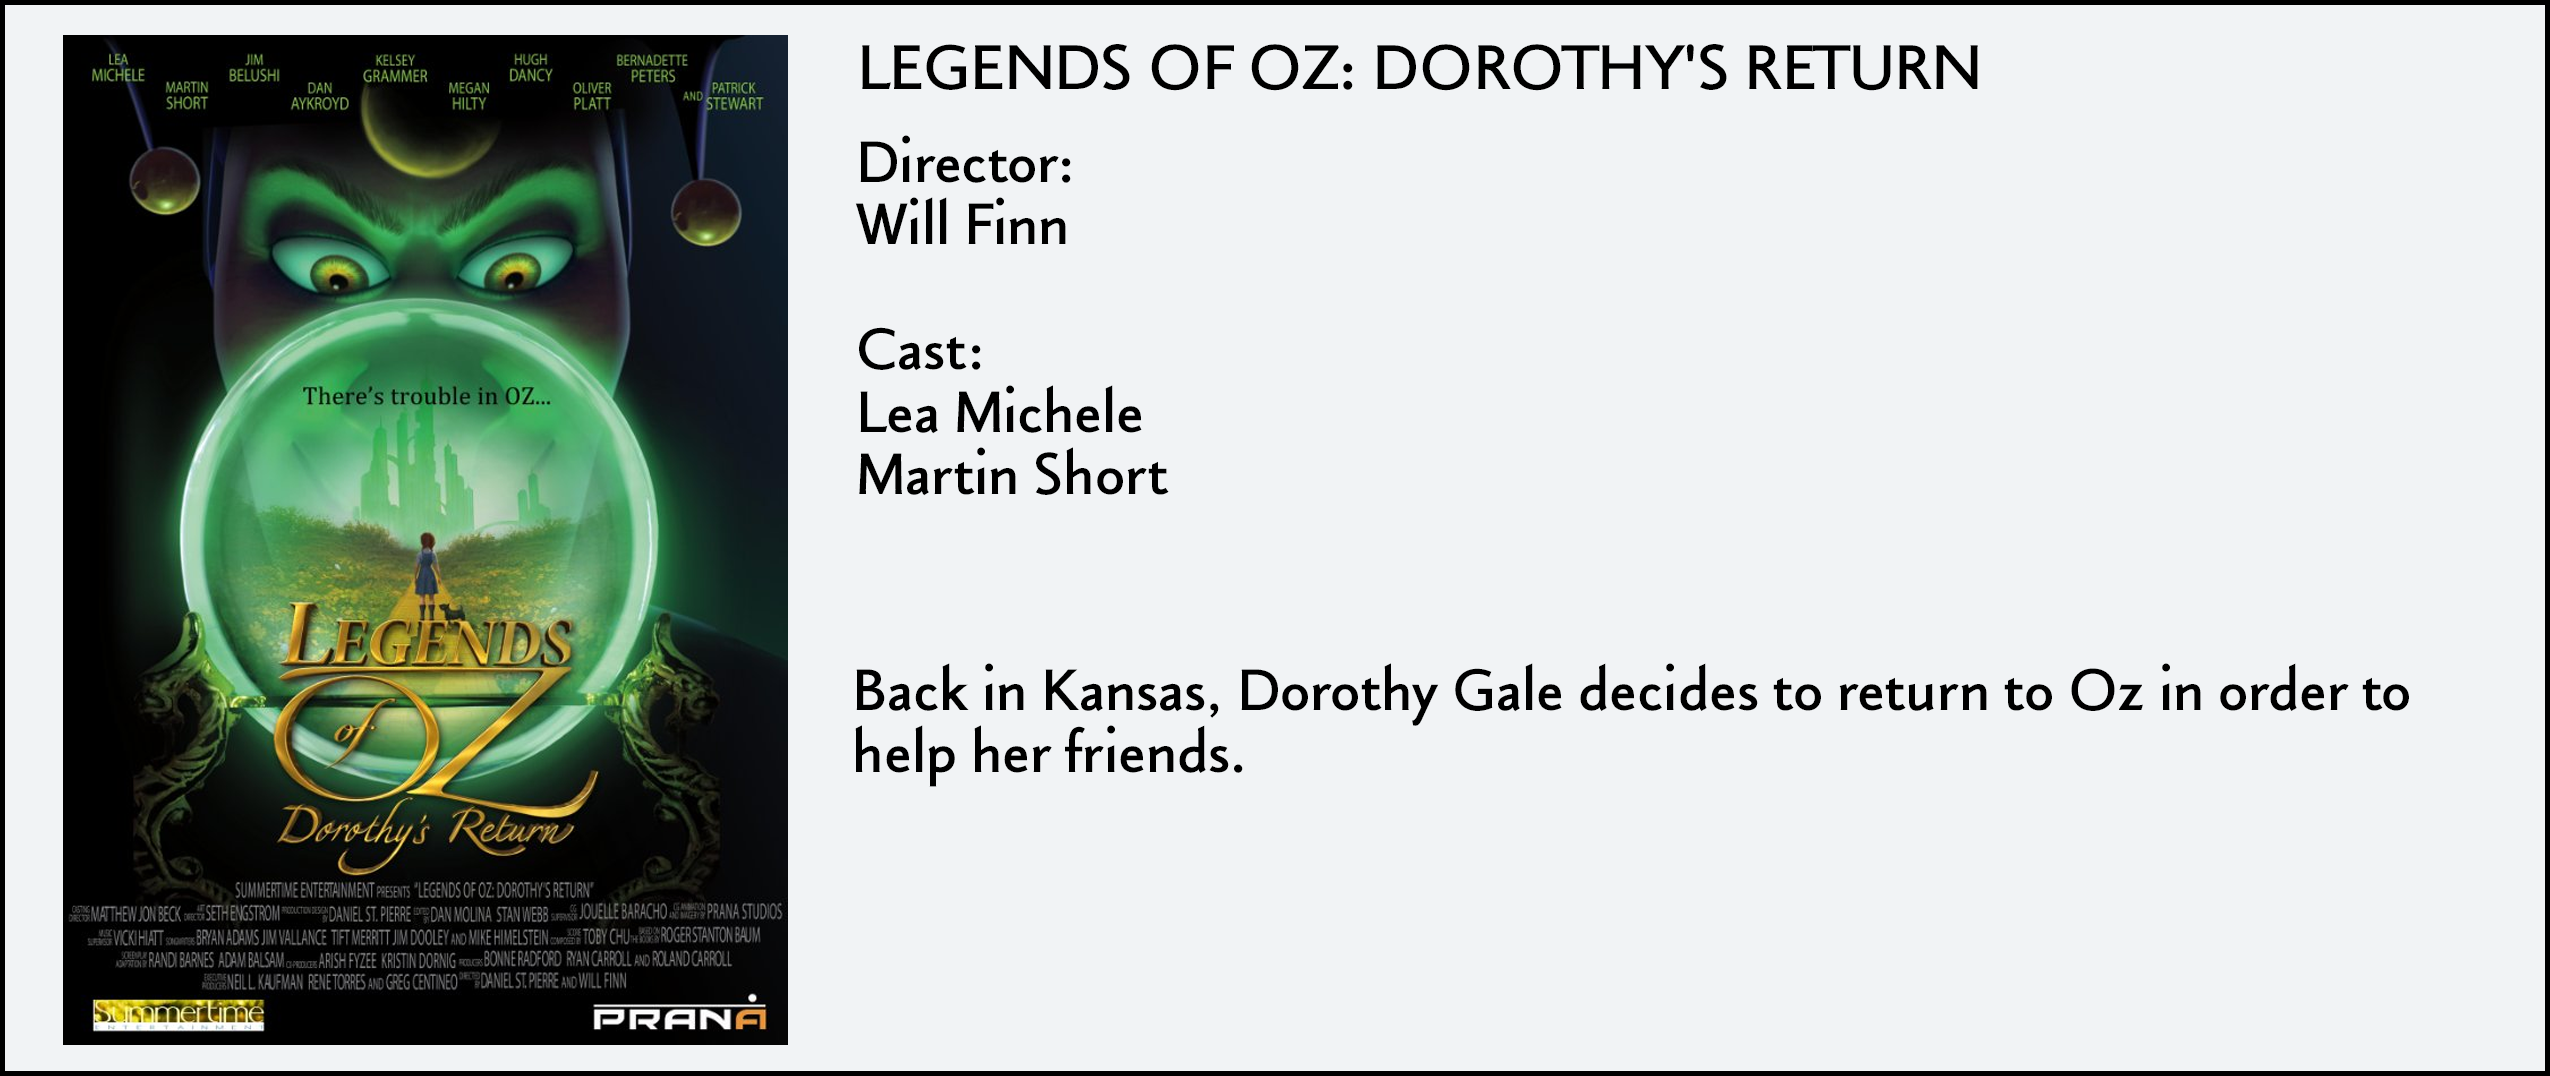 Legends-of-Oz--Dorothy's-Return